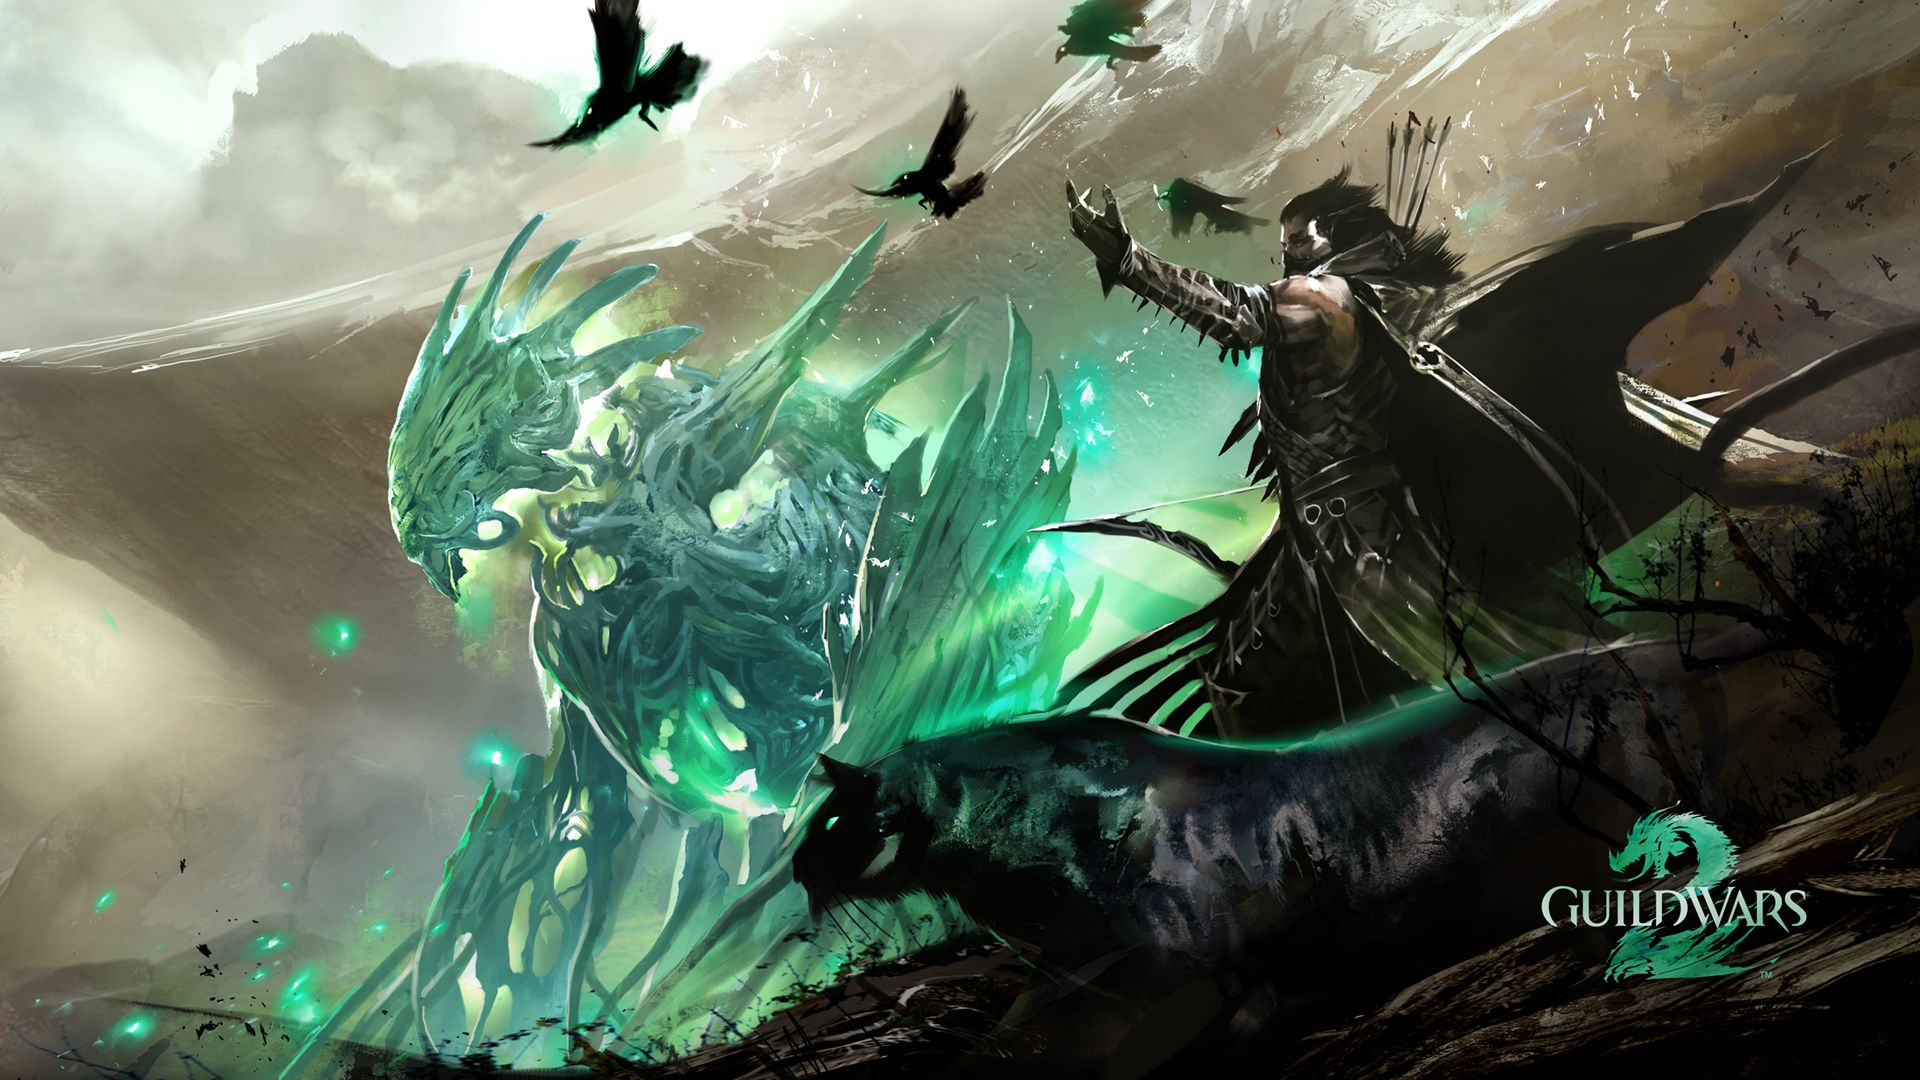 Pin By Jasager On Geekery Guild Wars Guild Wars 2 Epic Art